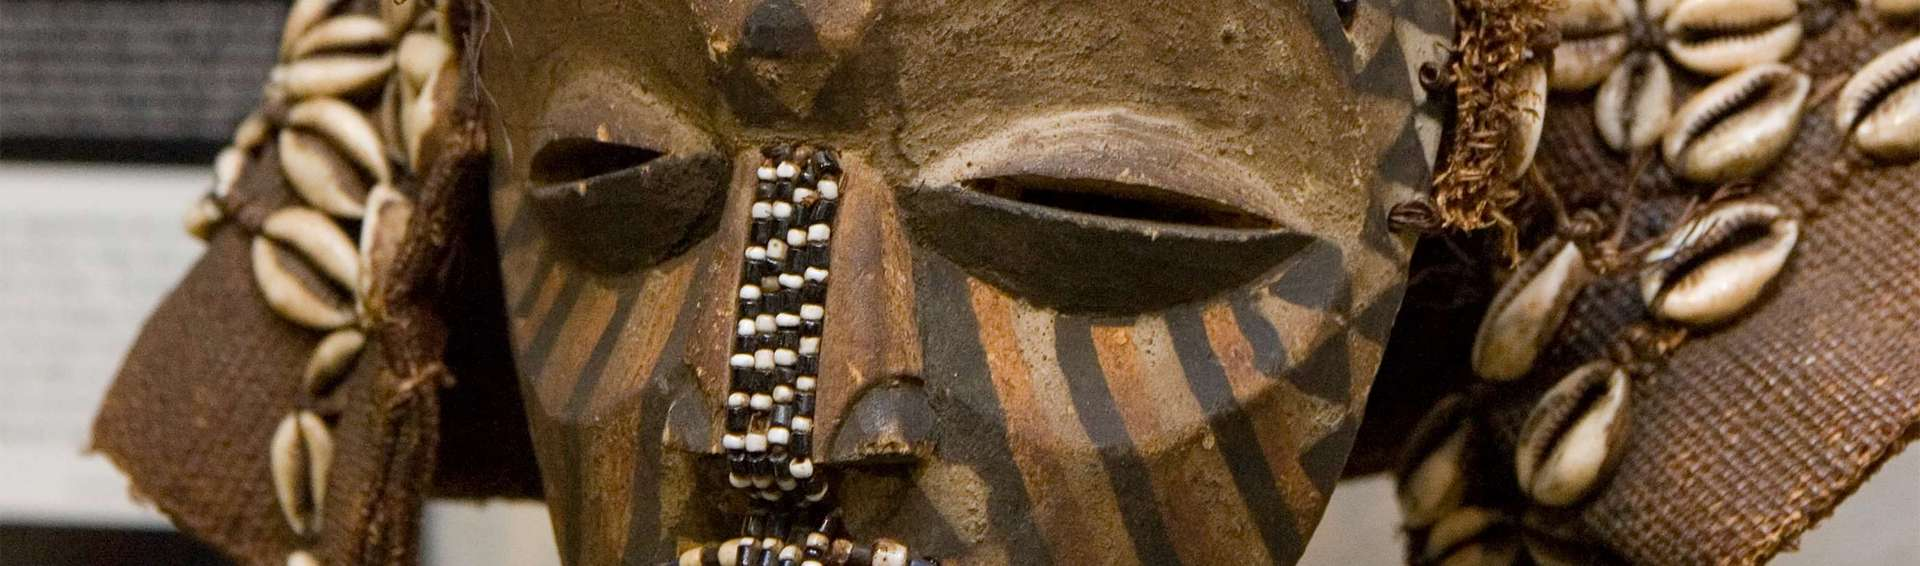 Up close of an African mask.